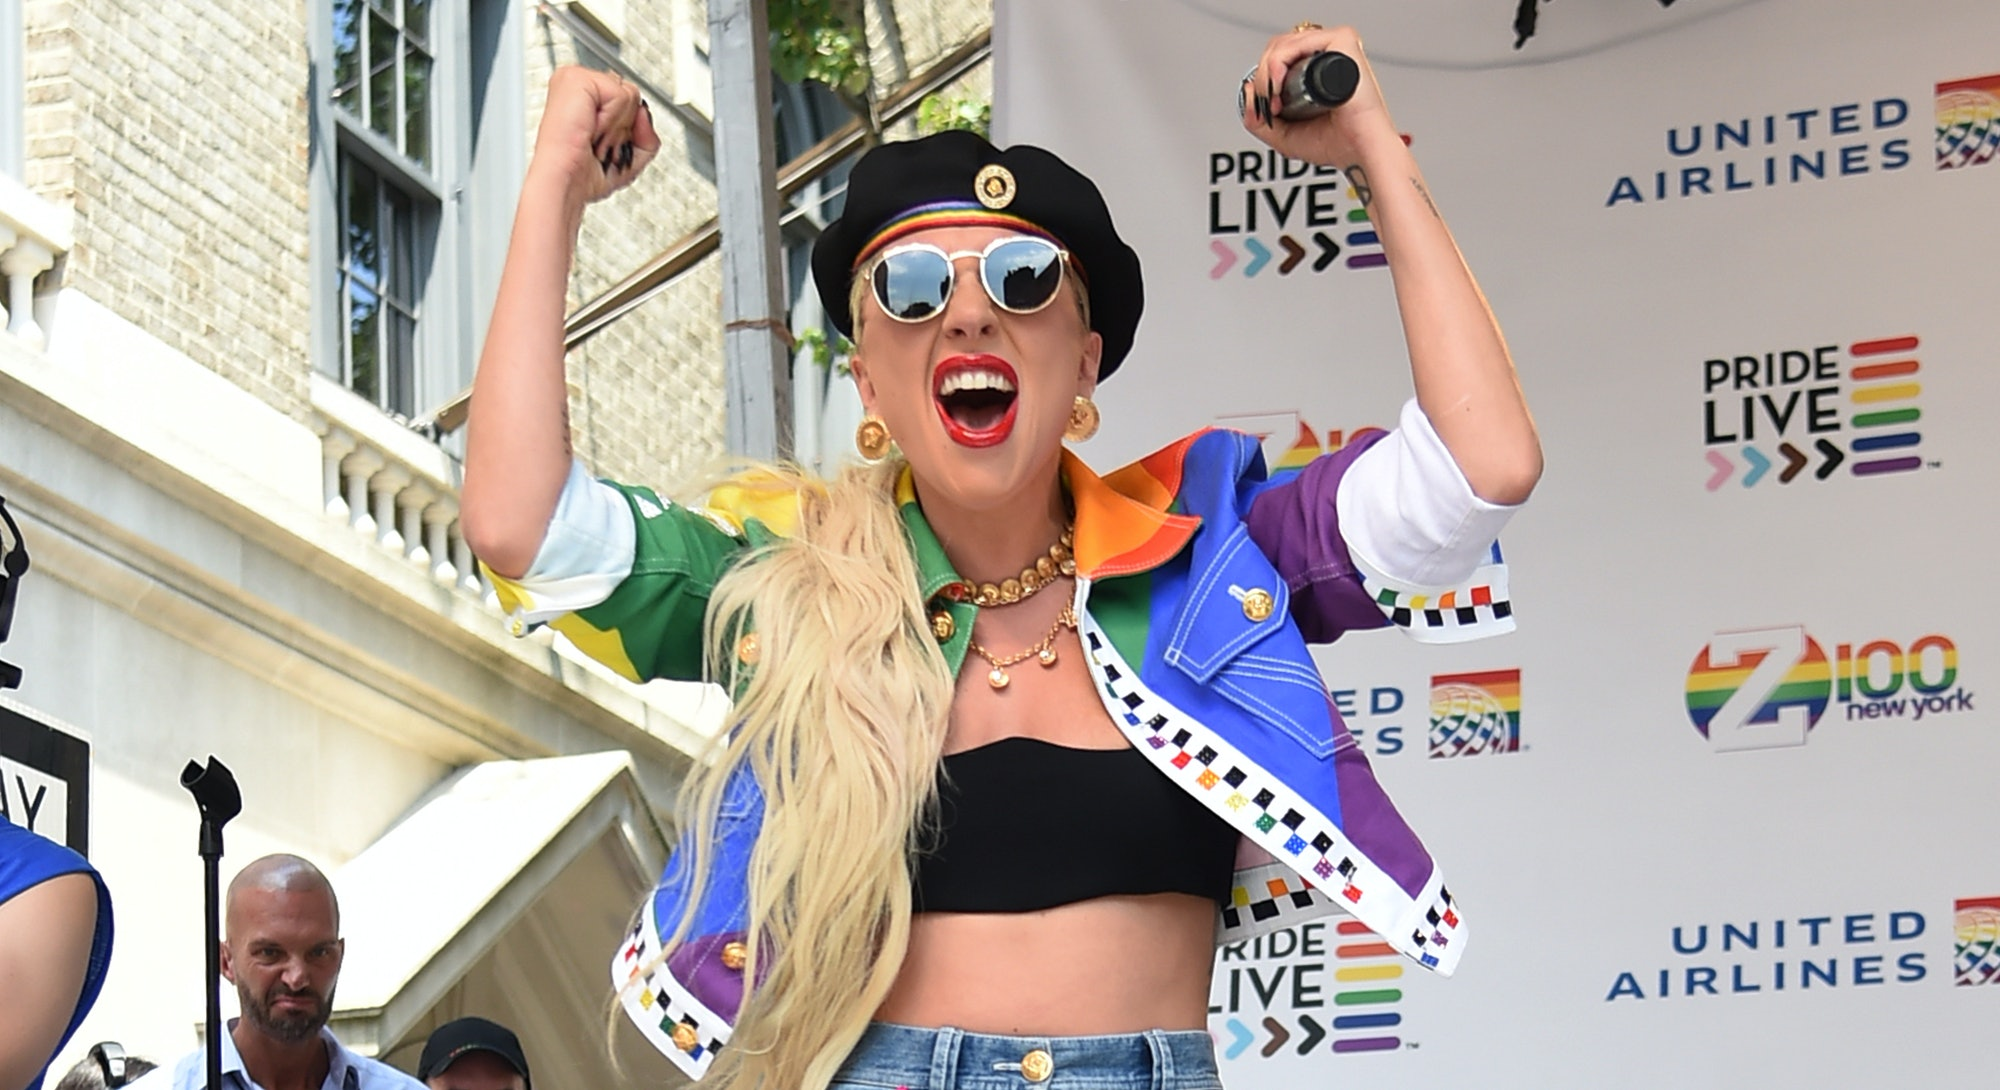 NEW YORK, NEW YORK - JUNE 28:  Lady Gaga speaks onstage during Pride Live's 2019 Stonewall Day on June 28, 2019 in New York City. (Photo by Jamie McCarthy/Getty Images for Pride Live)